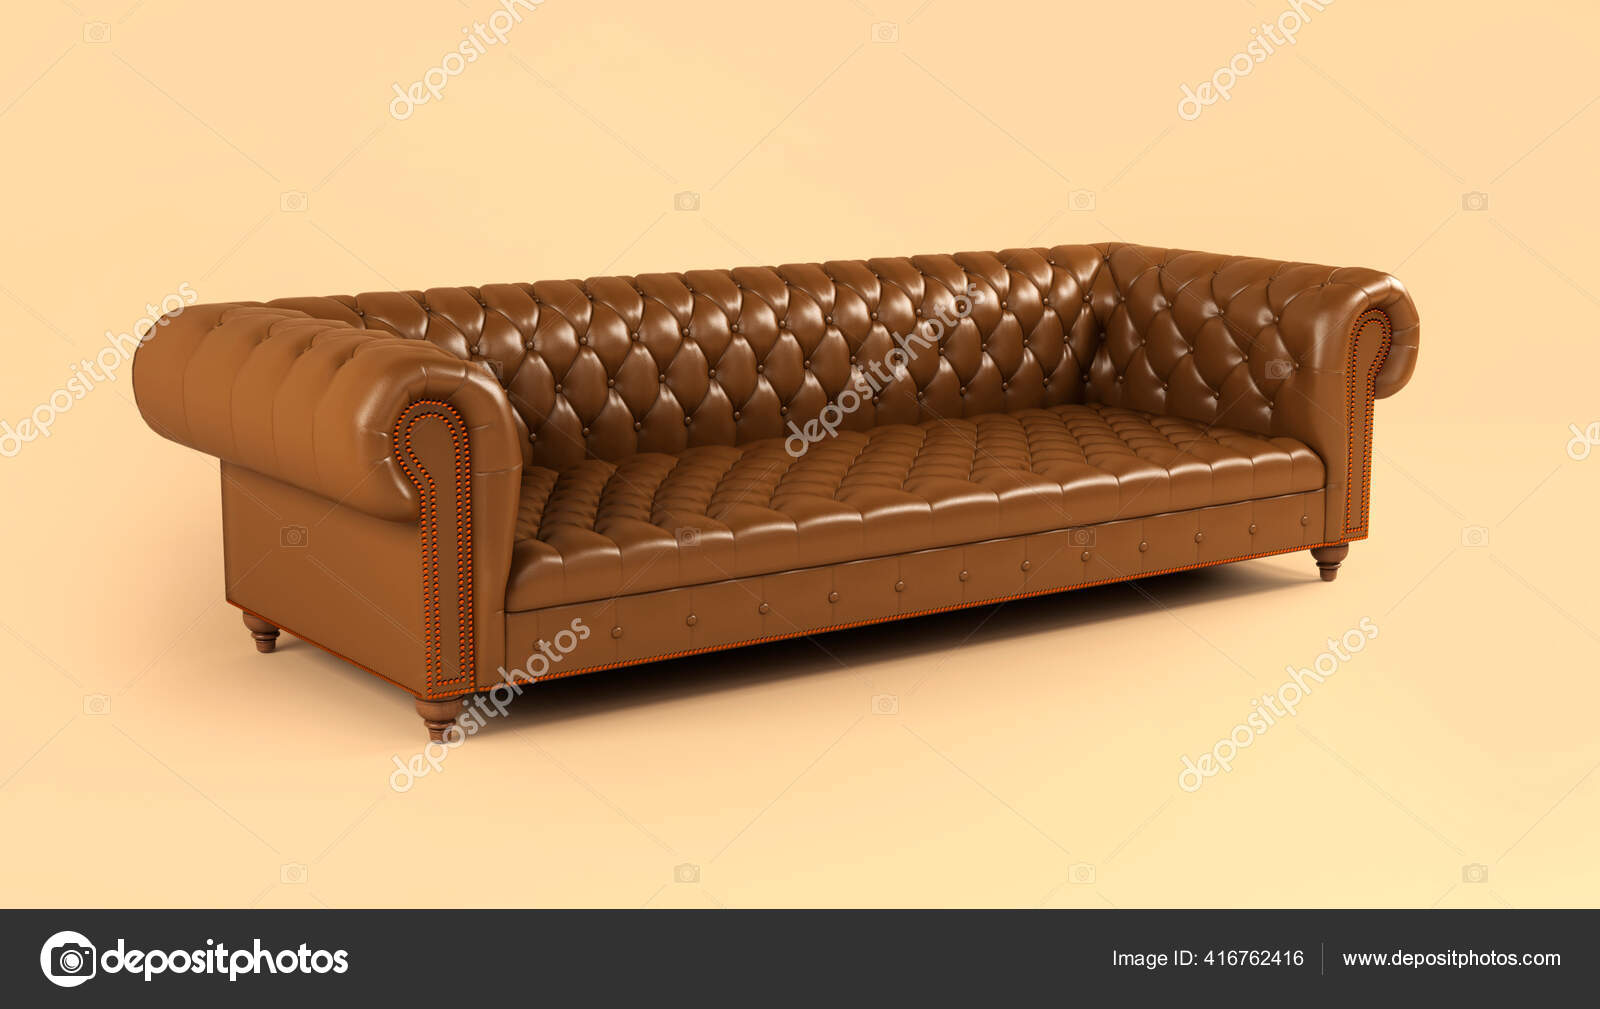 Leather Brown Sofa Wooden Legs Quilted Back Beige Background Side Stock Photo Arkhipenko21 416762416